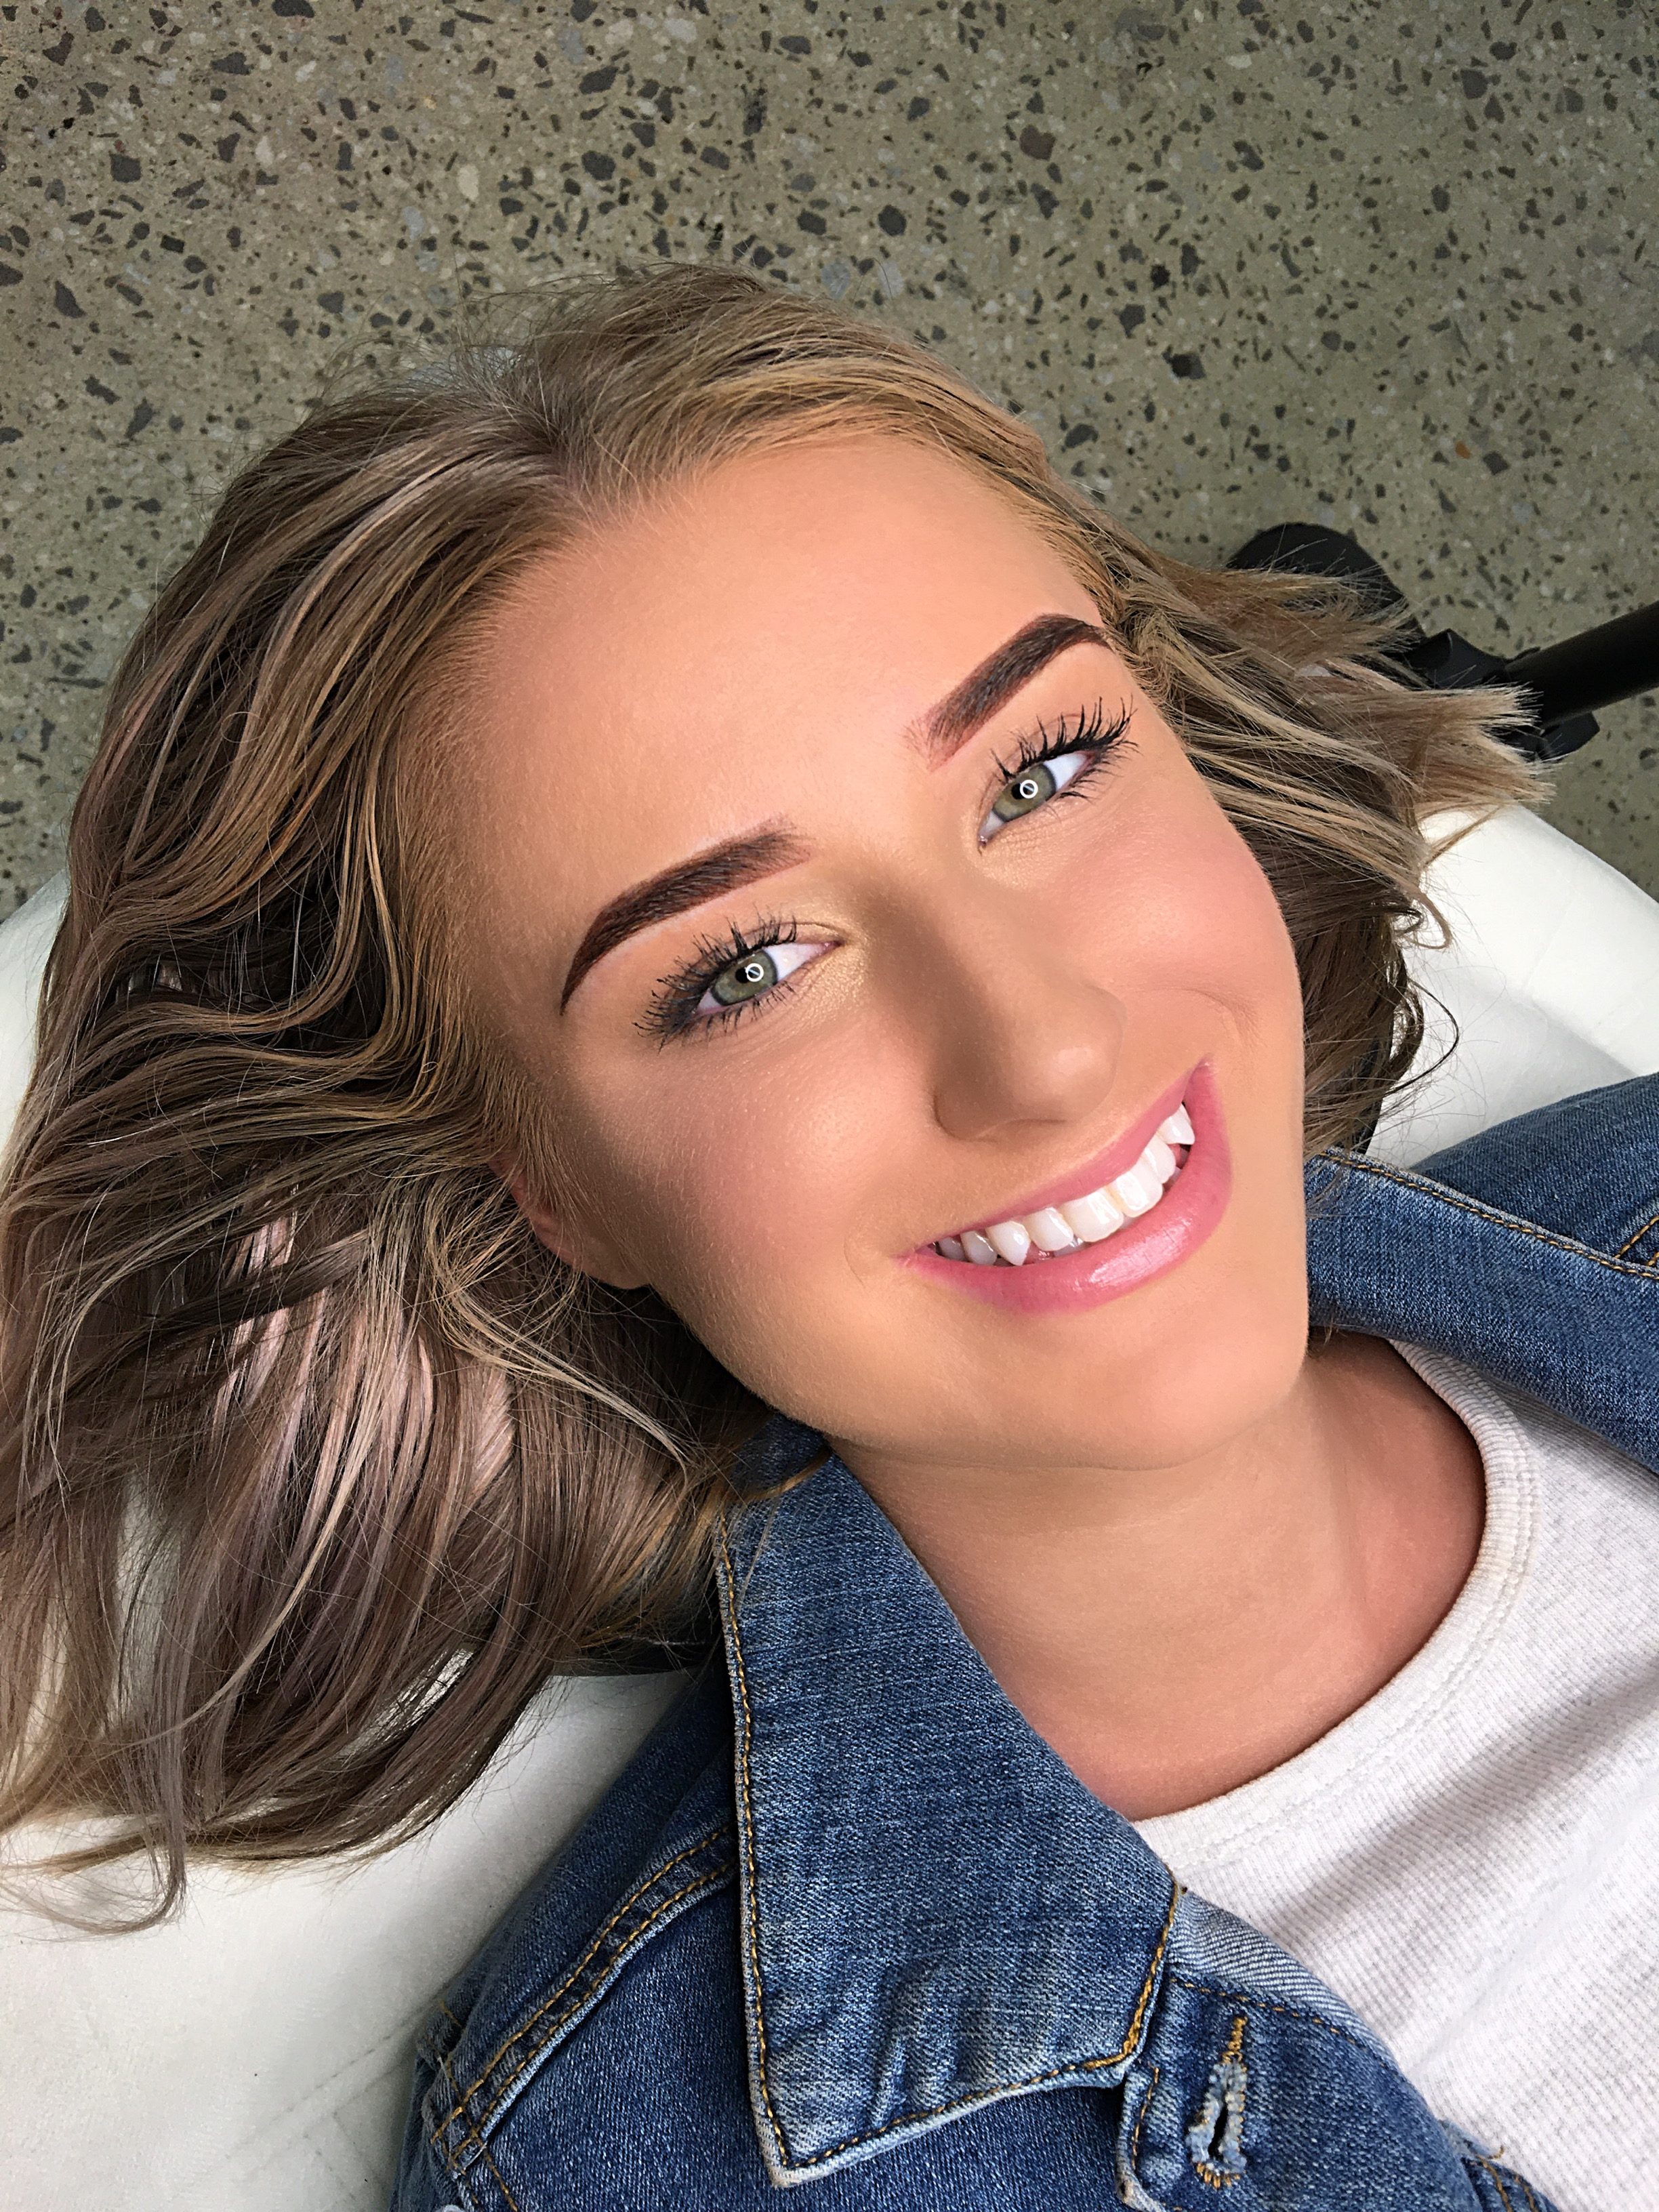 Ombrèbrows-powder-brows-eyebrow-tattoo-microblading-featherbrows